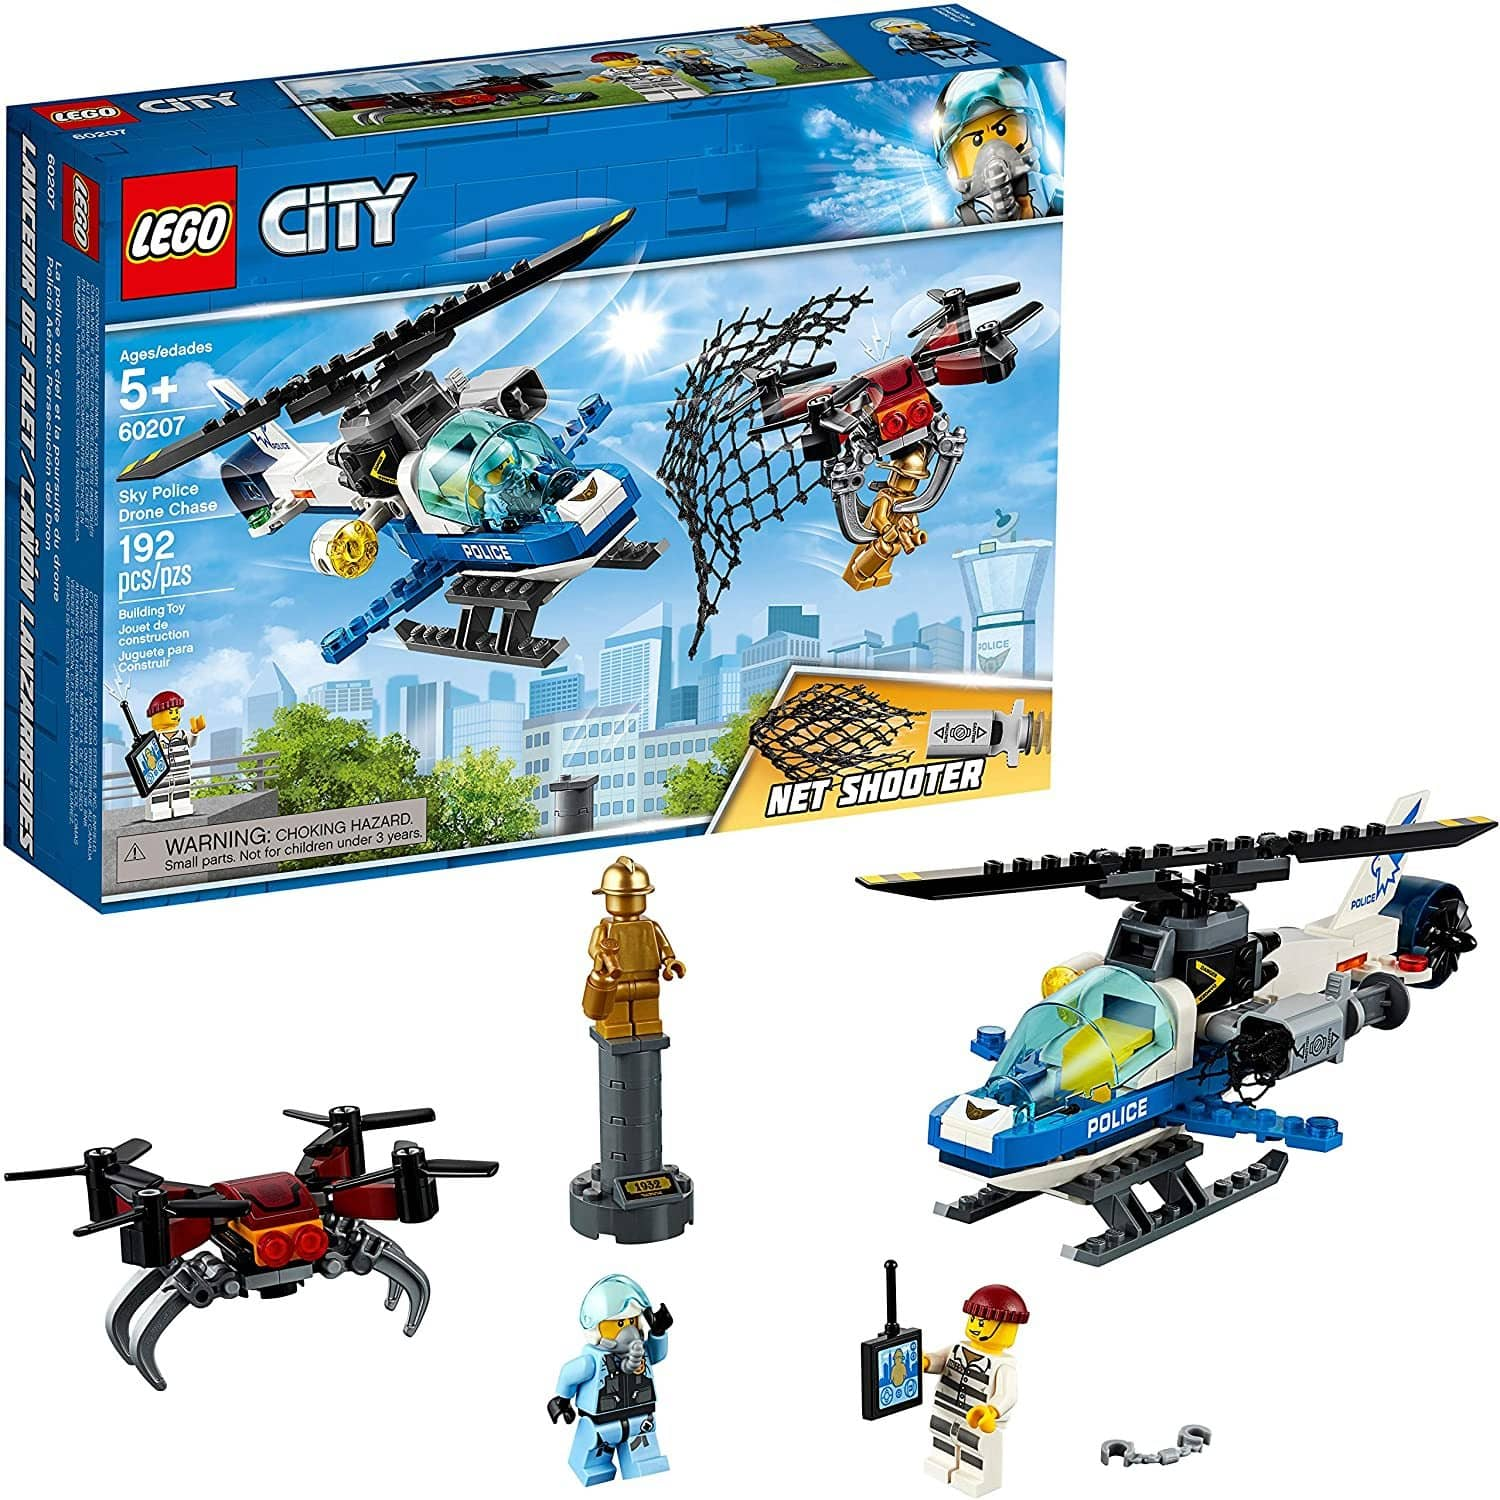 Lego City Sky Police Drone Chase 60207 Building Kit (192 Pieces)-Kidding Around NYC